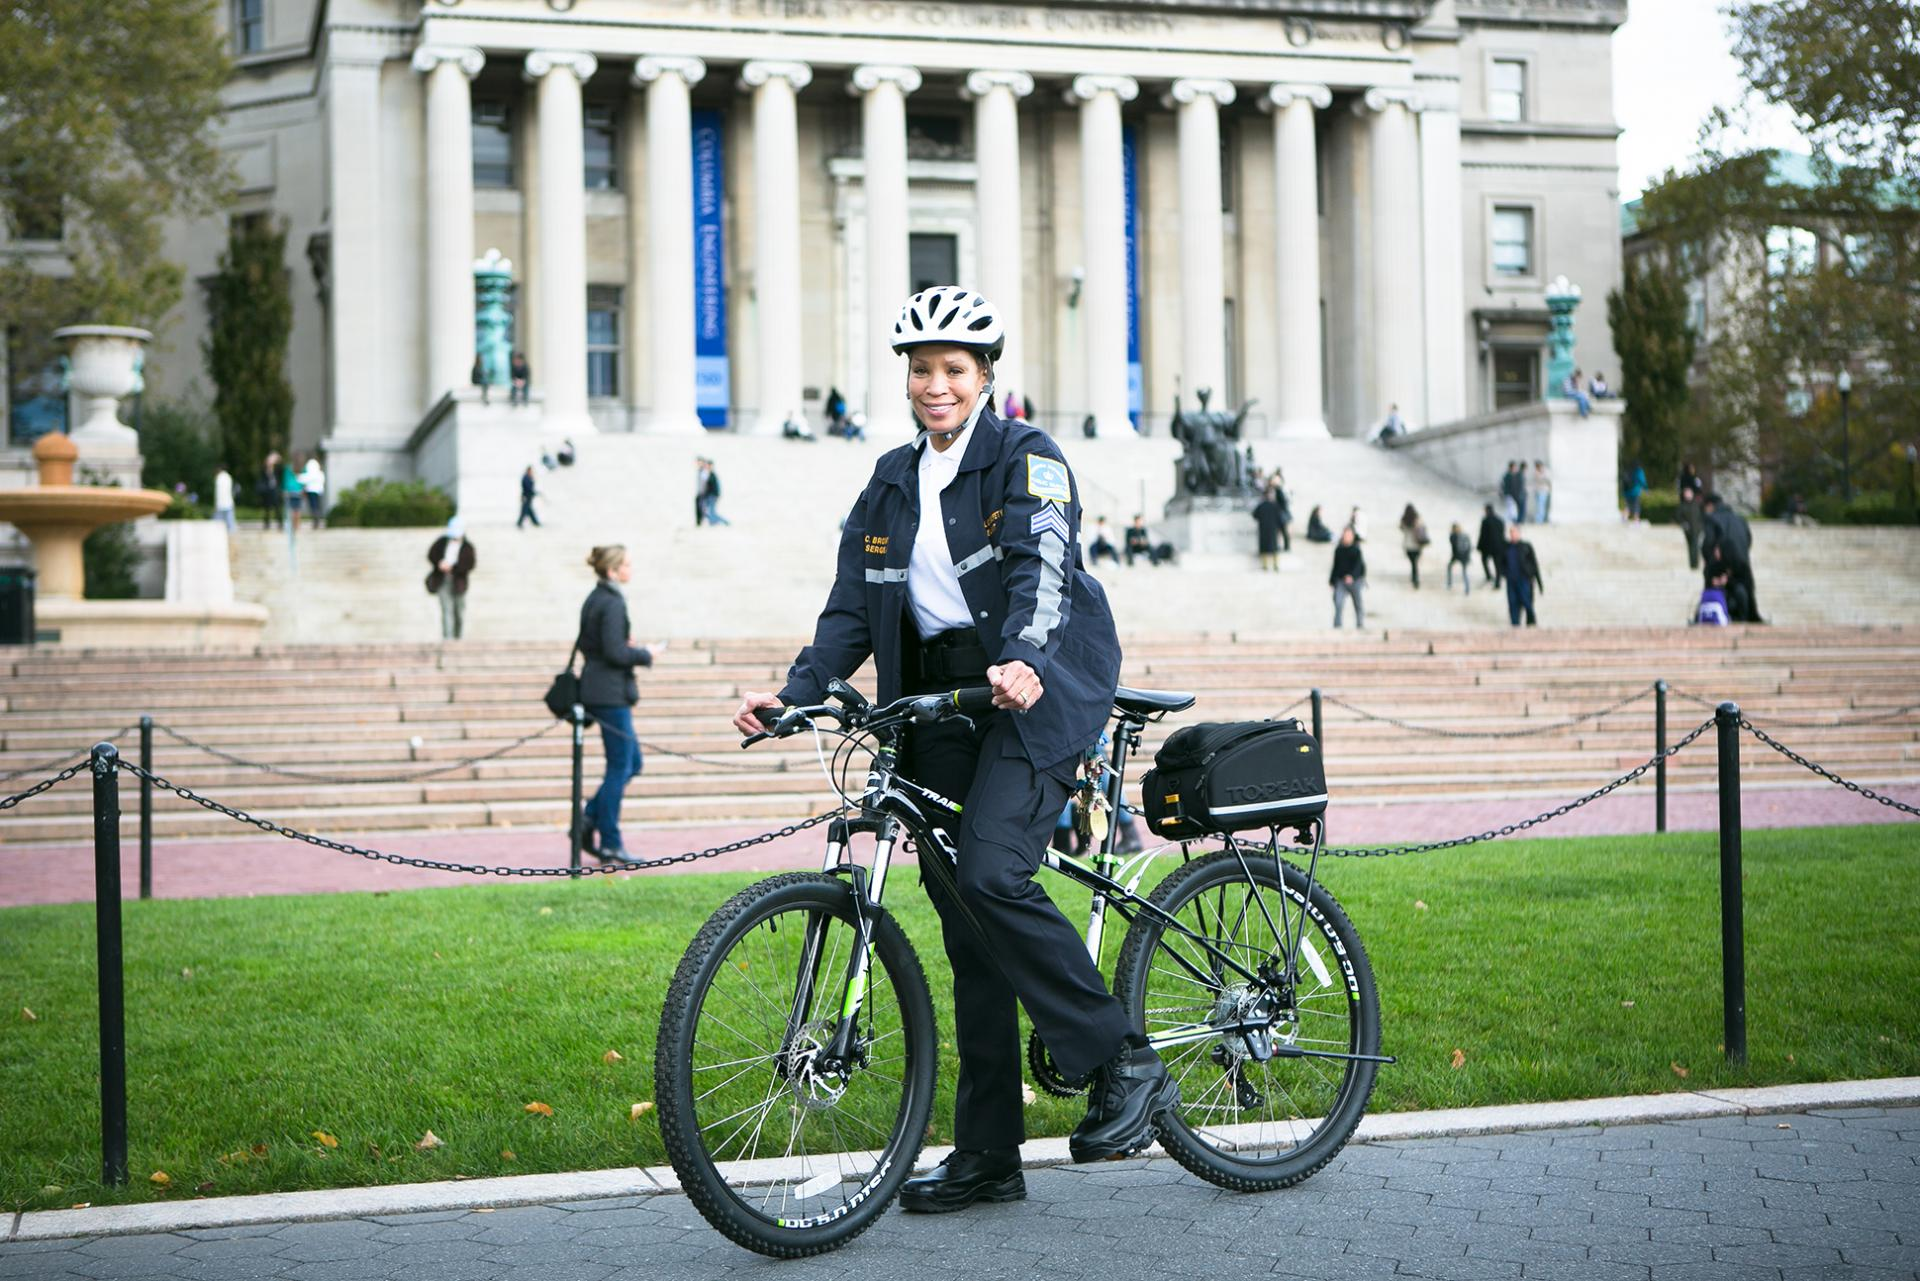 Public Safety Officer on Bicycle Patrol